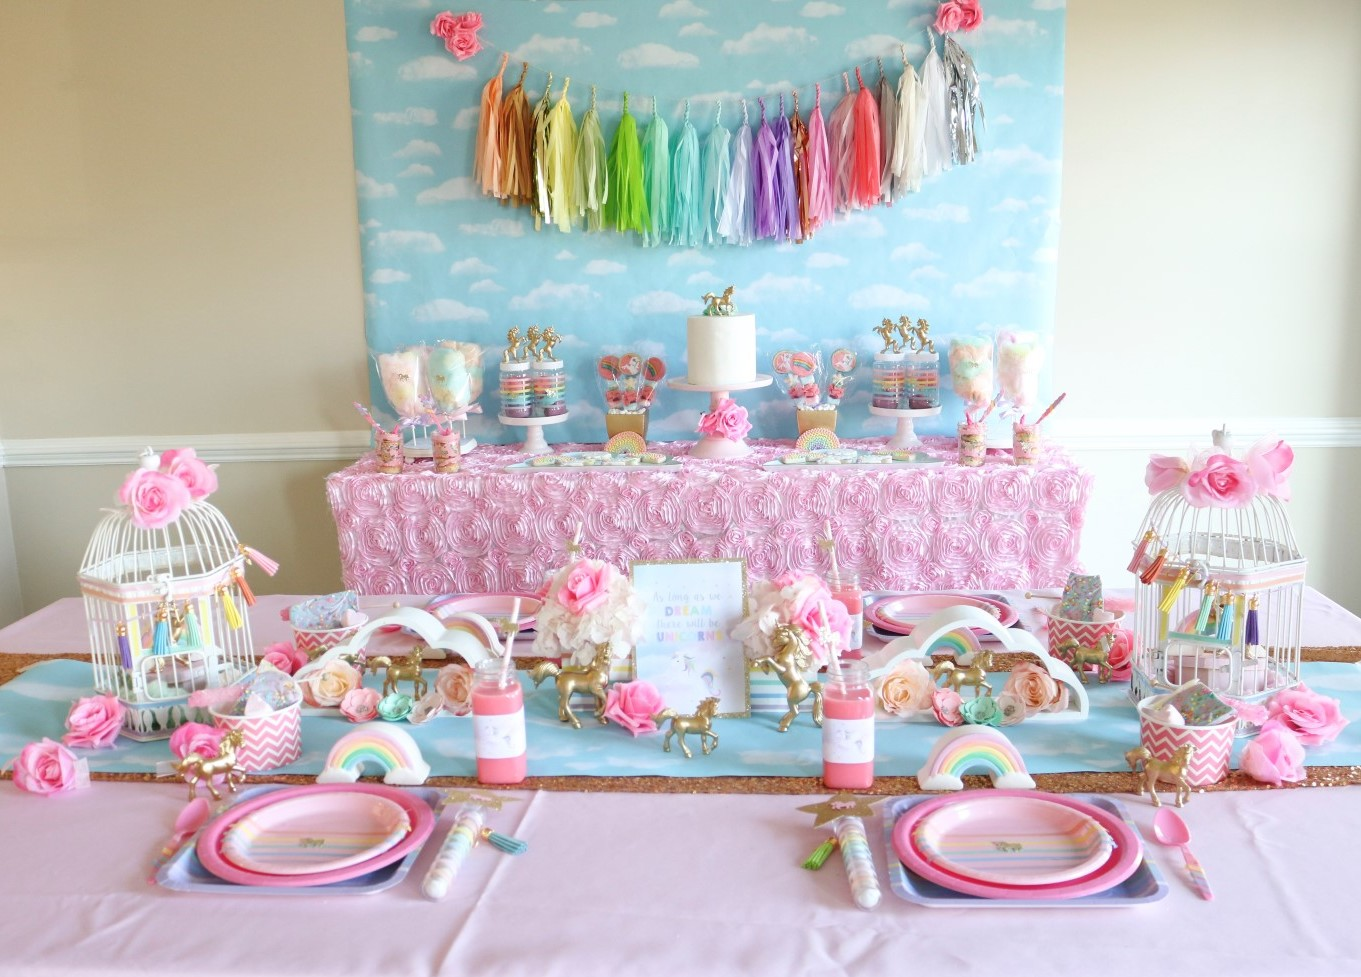 Rainbow and Unicorn Party Ideas